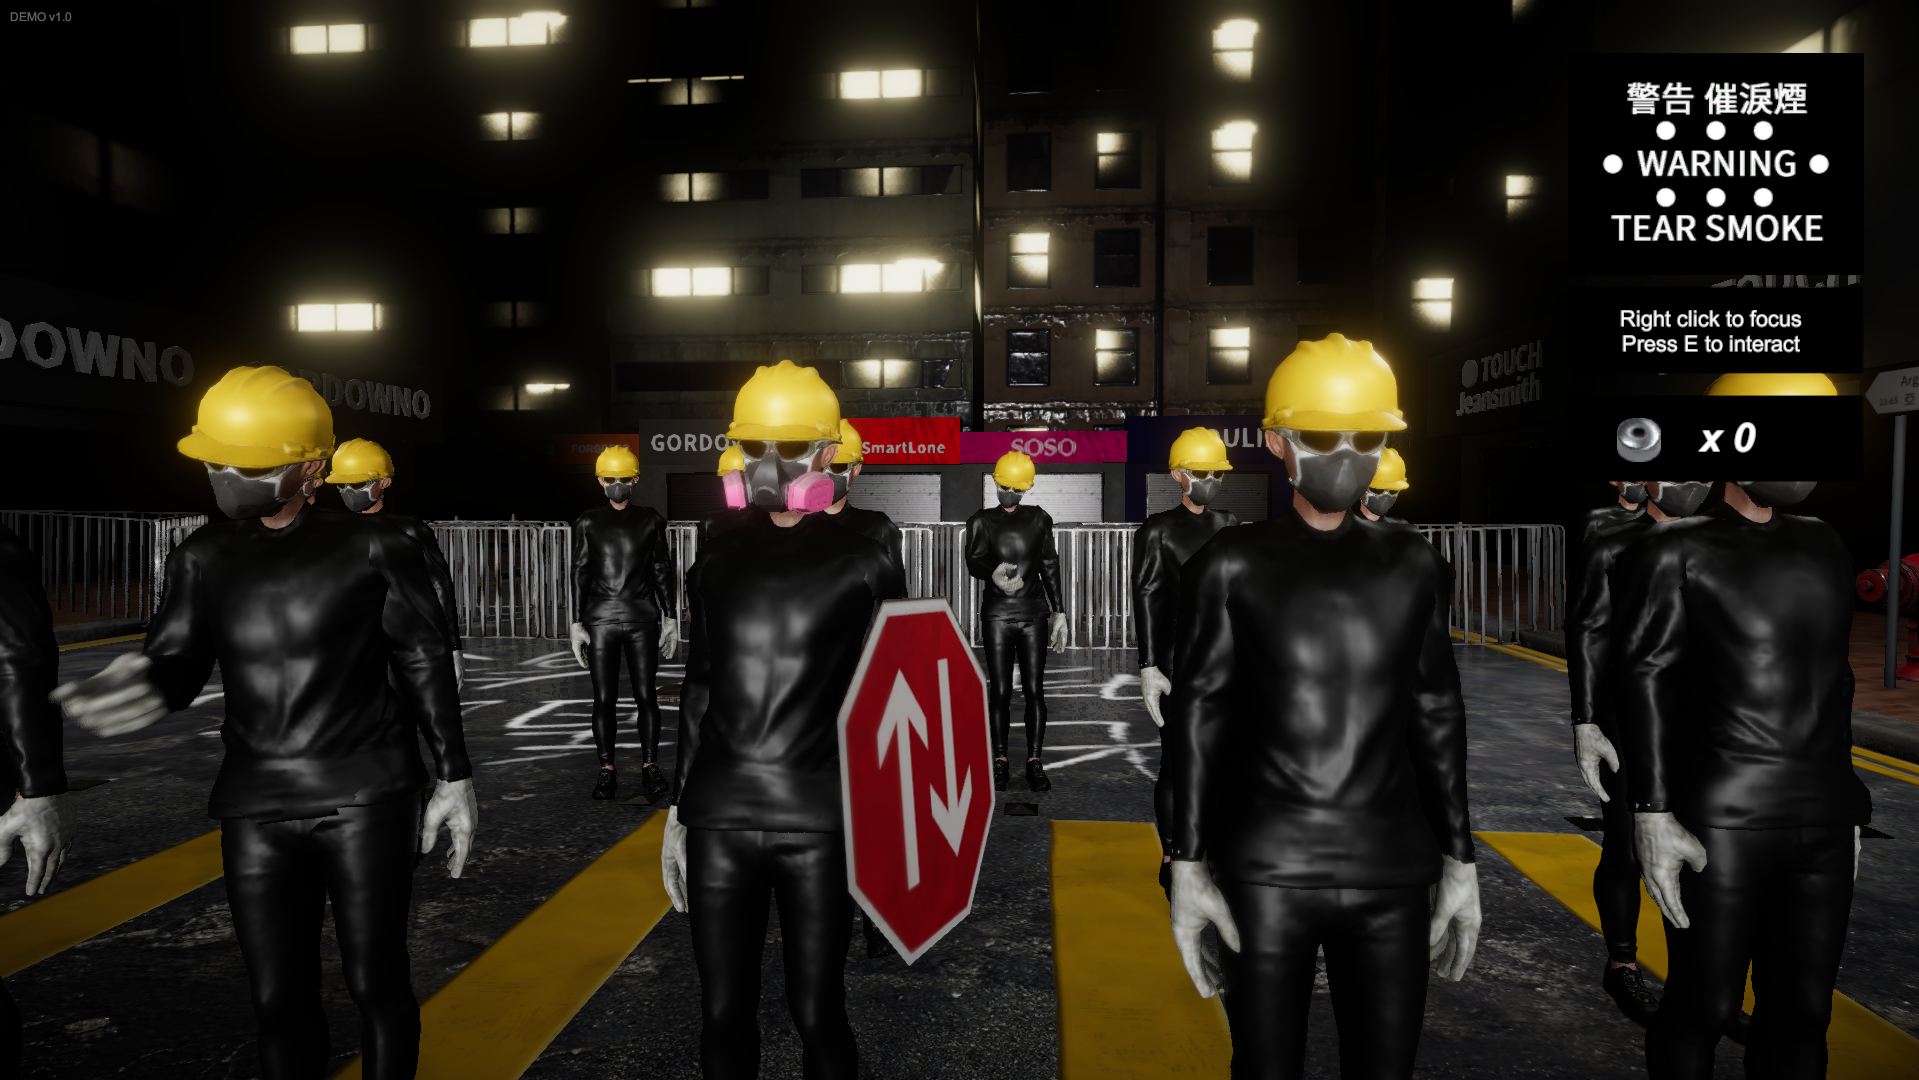 Why Won't Steam Approve These Games Supporting Hong Kong Protestors?